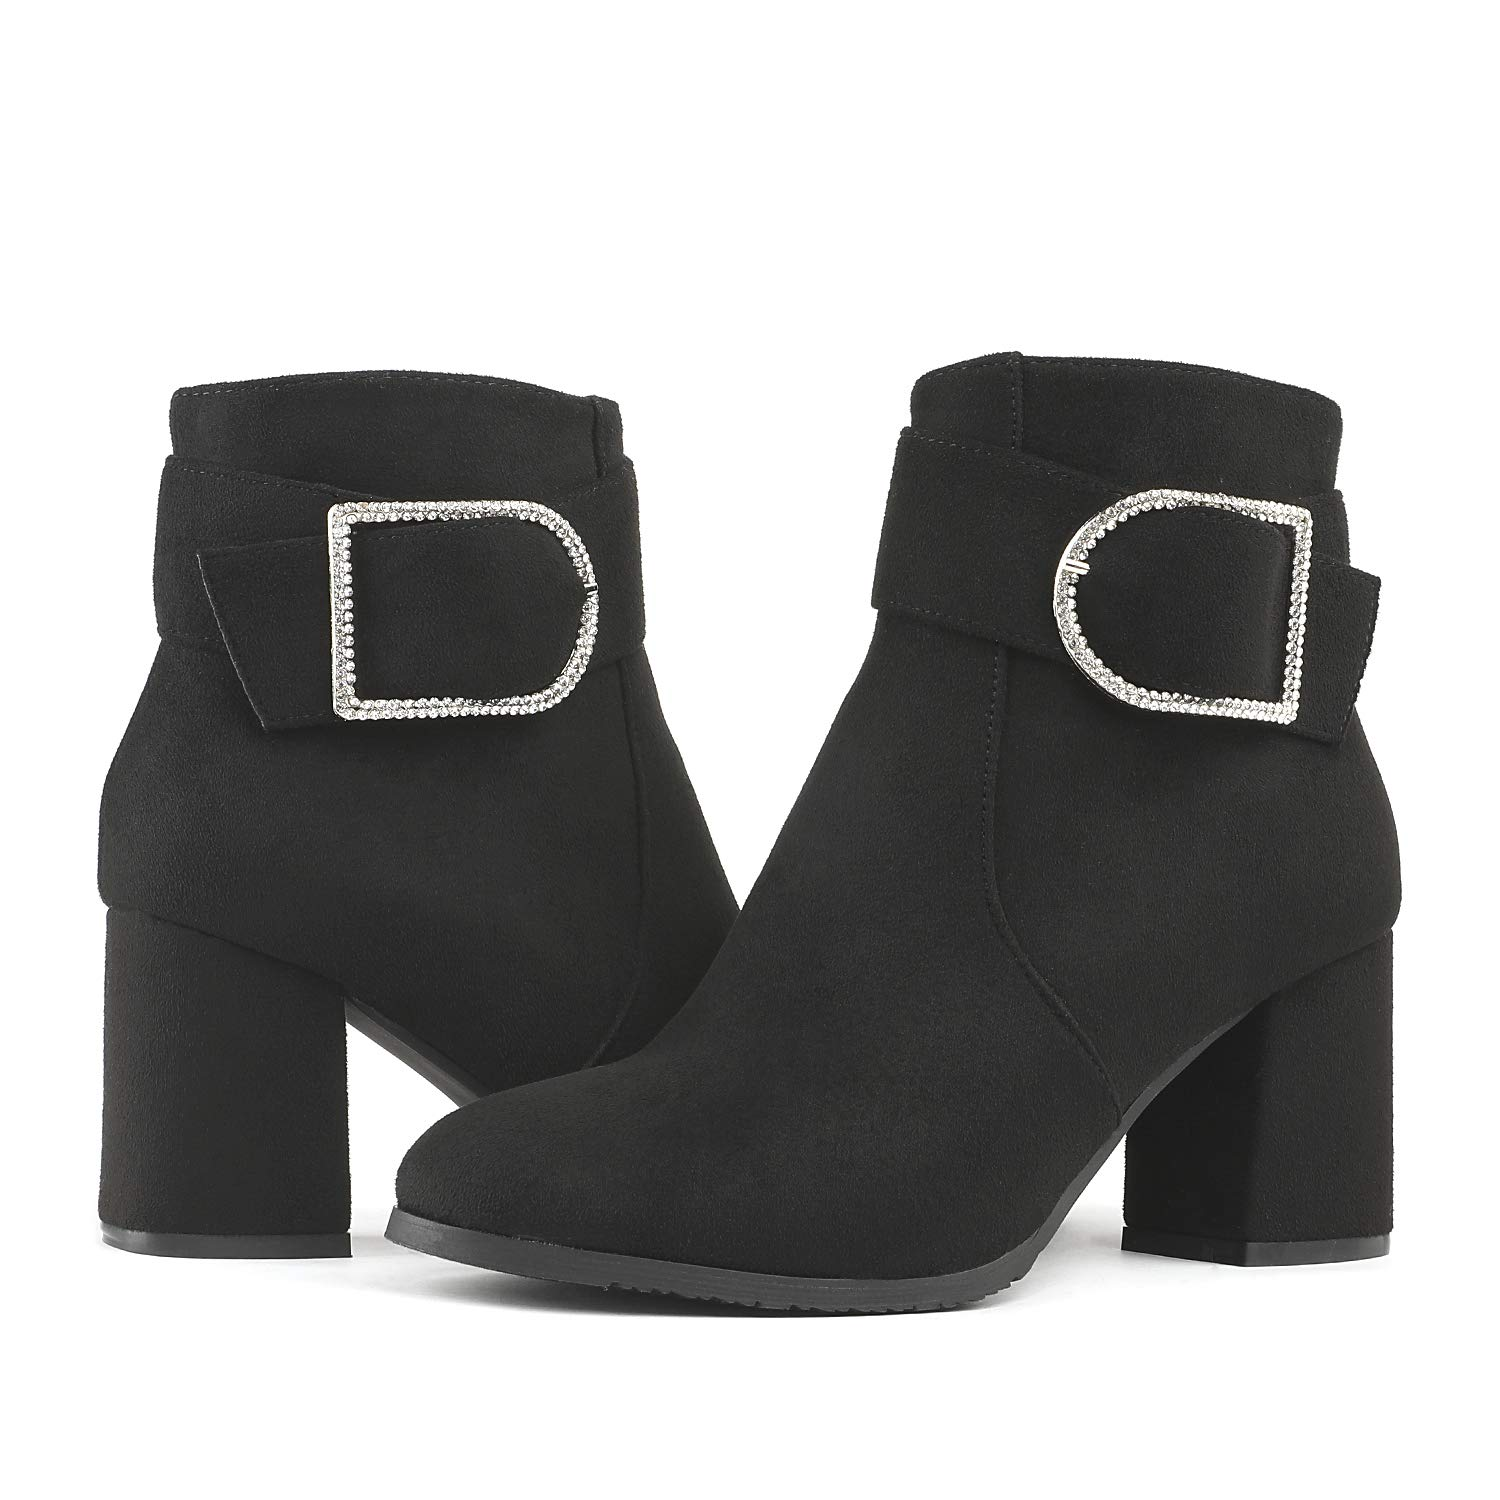 83c073570a68c Amazon.com   DREAM PAIRS Women's Chunky Heel Ankle Booties   Ankle & Bootie